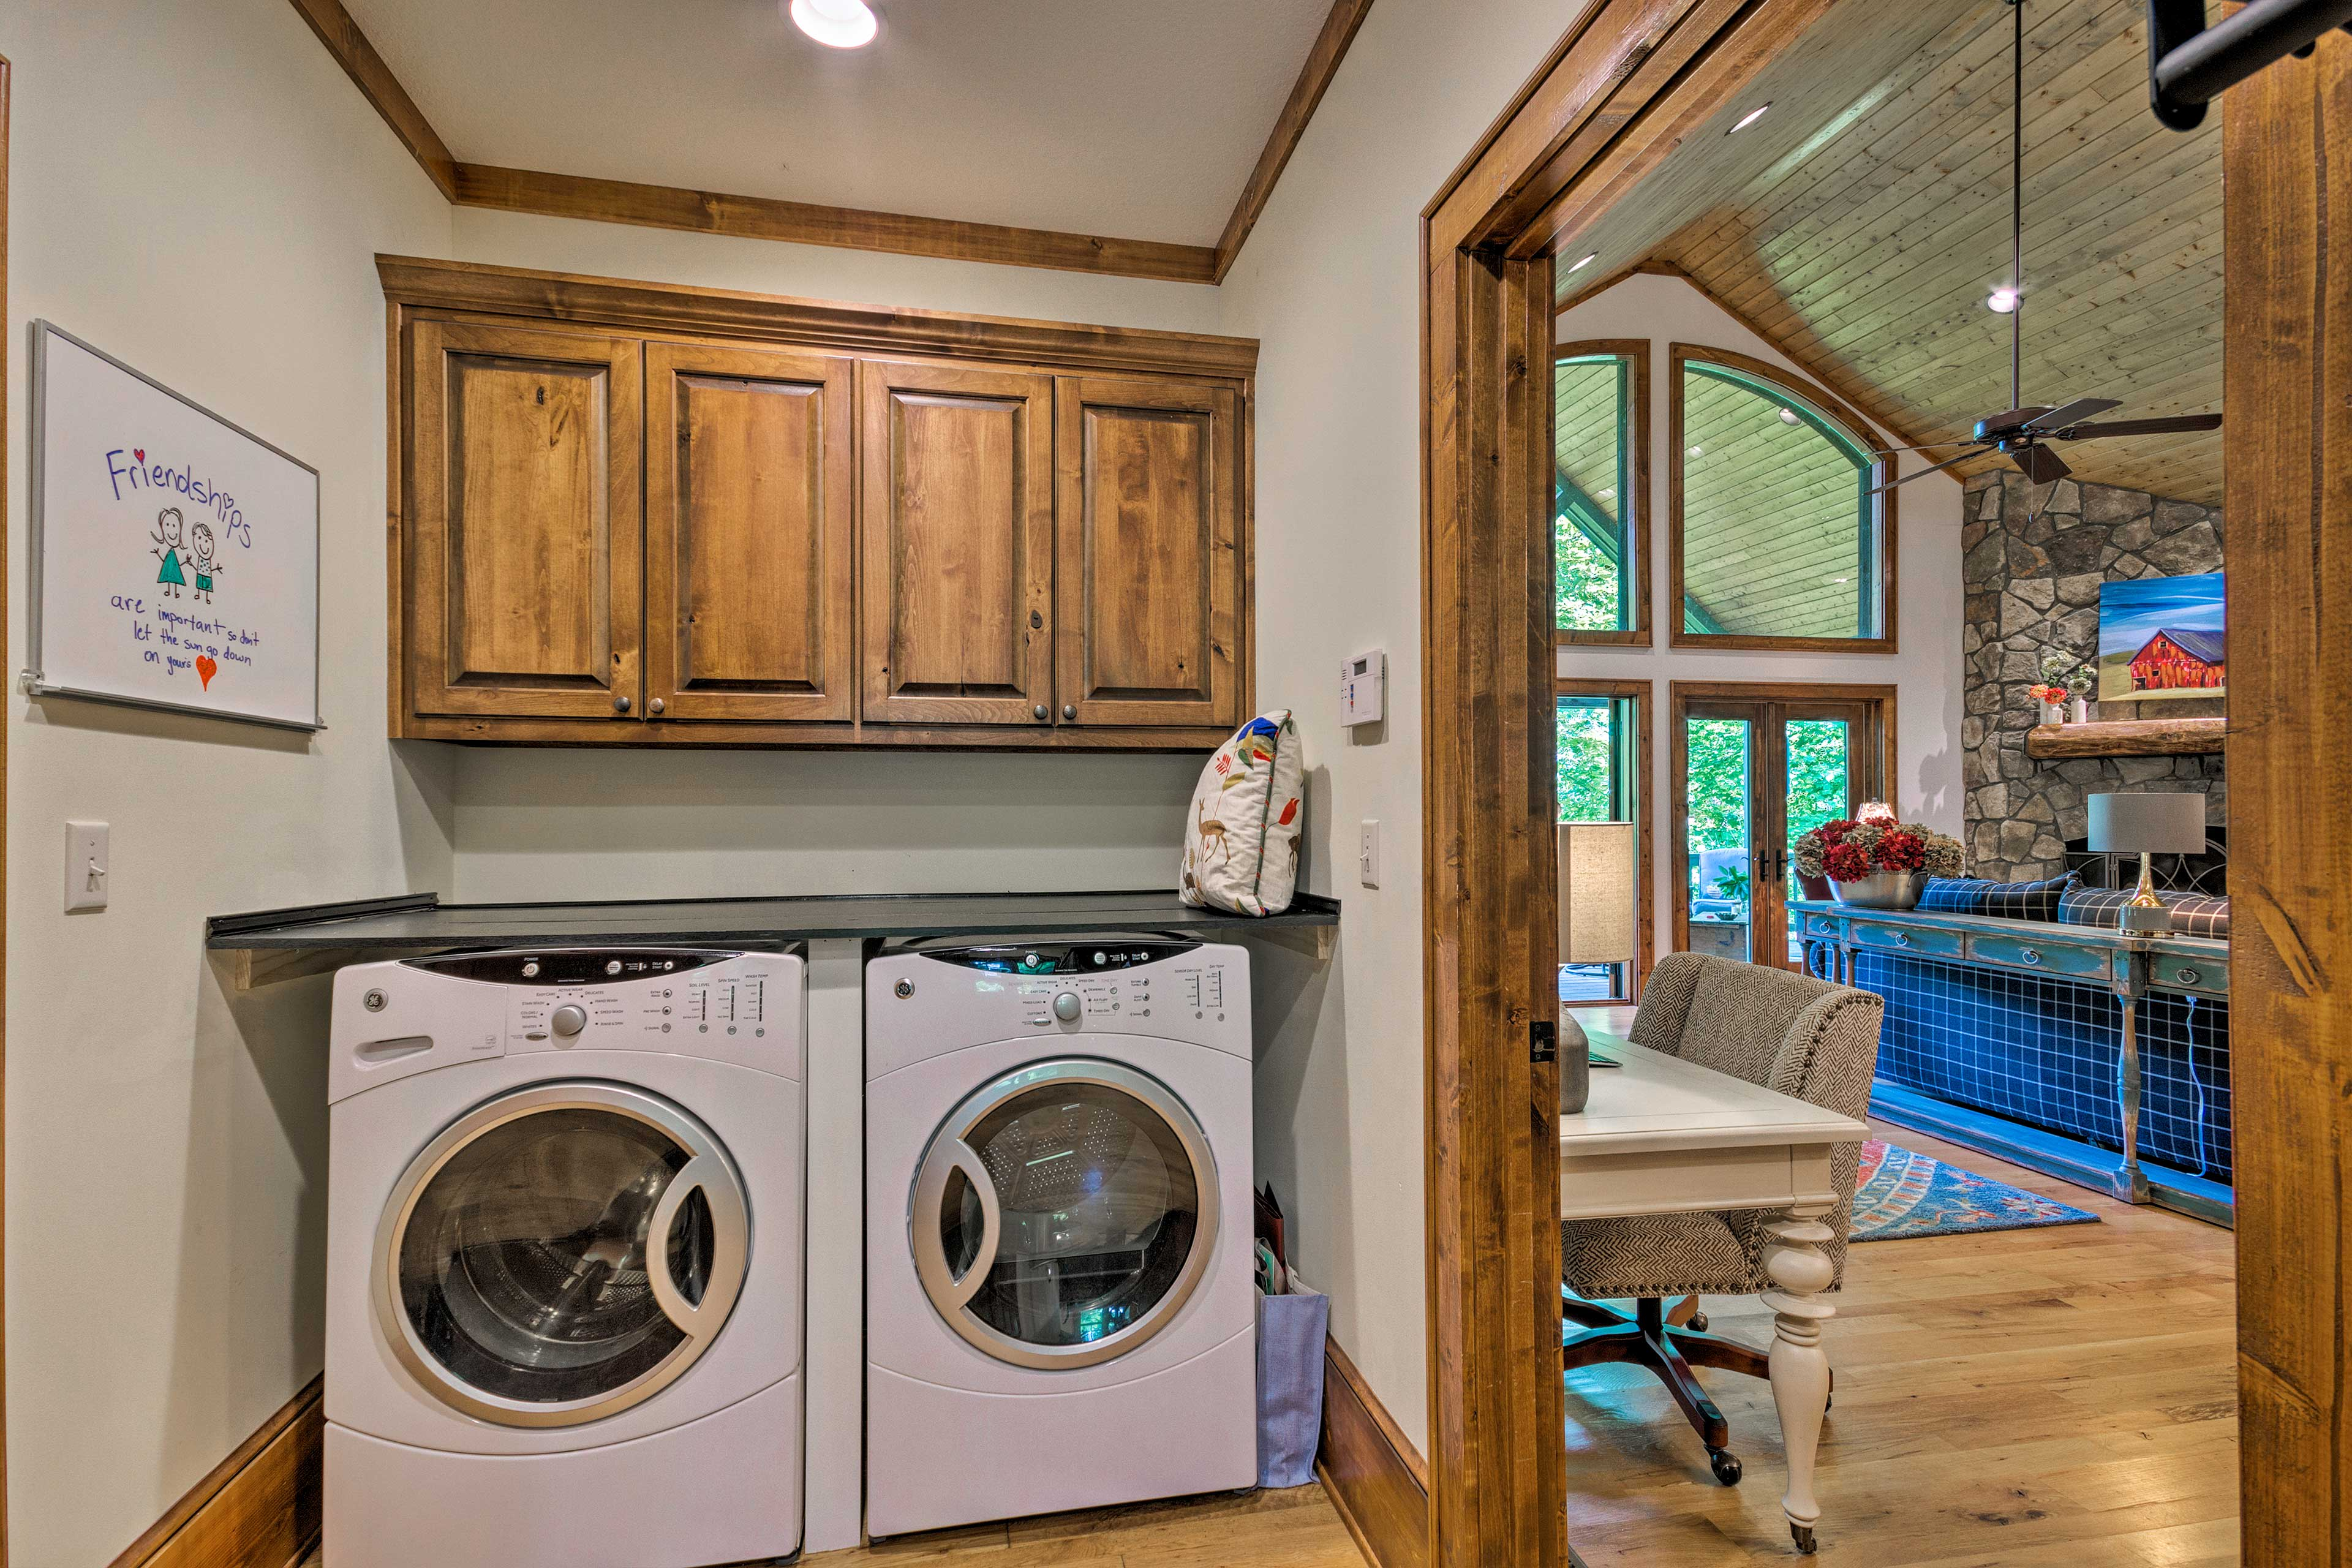 Utilize the washer and dryer during your stay.